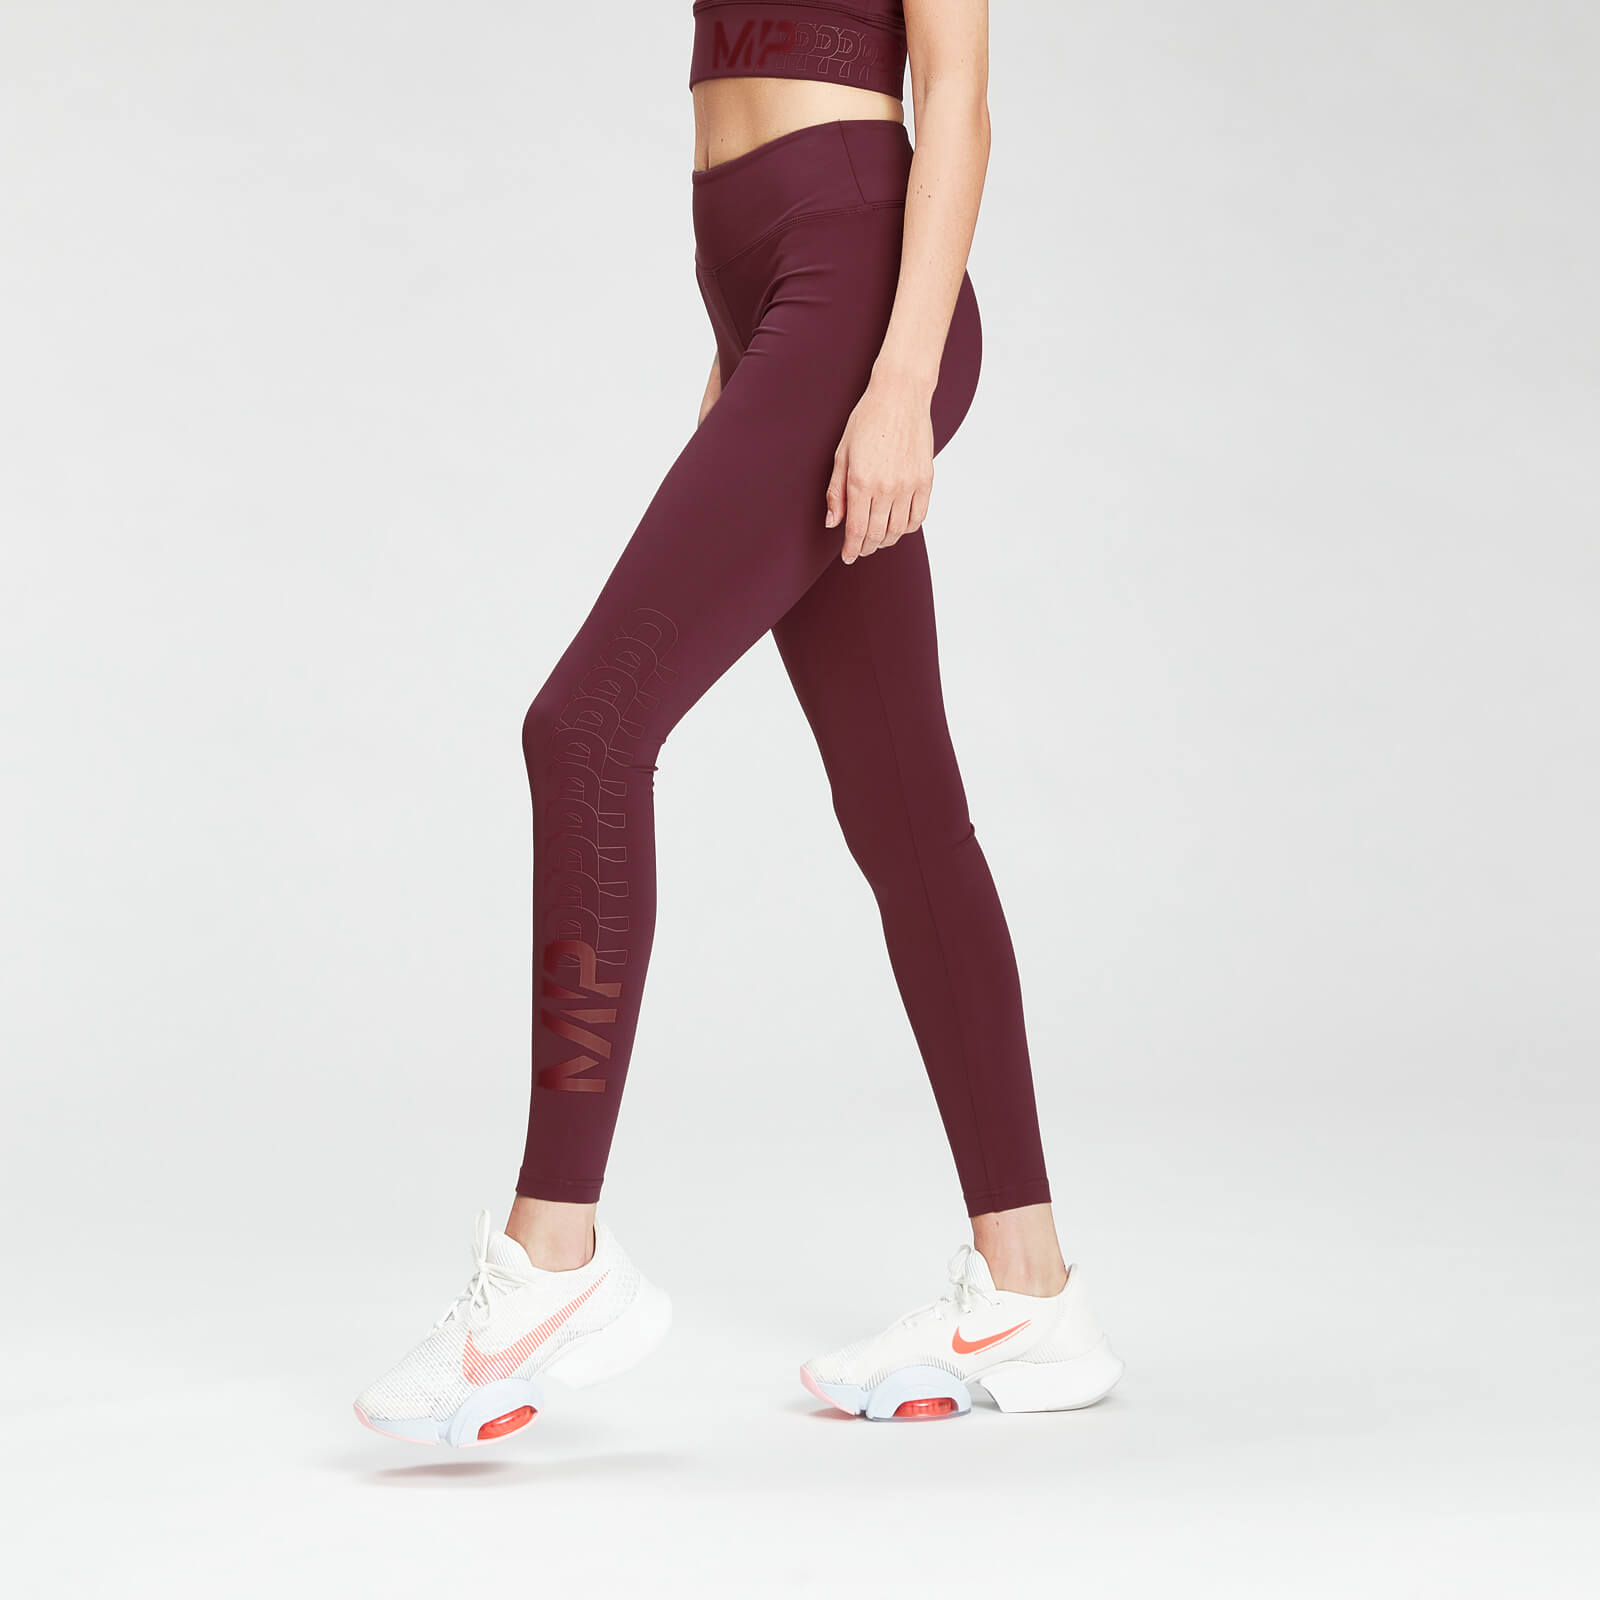 MP Women's Fade Graphic Training Leggings - Washed Oxblood - XXL